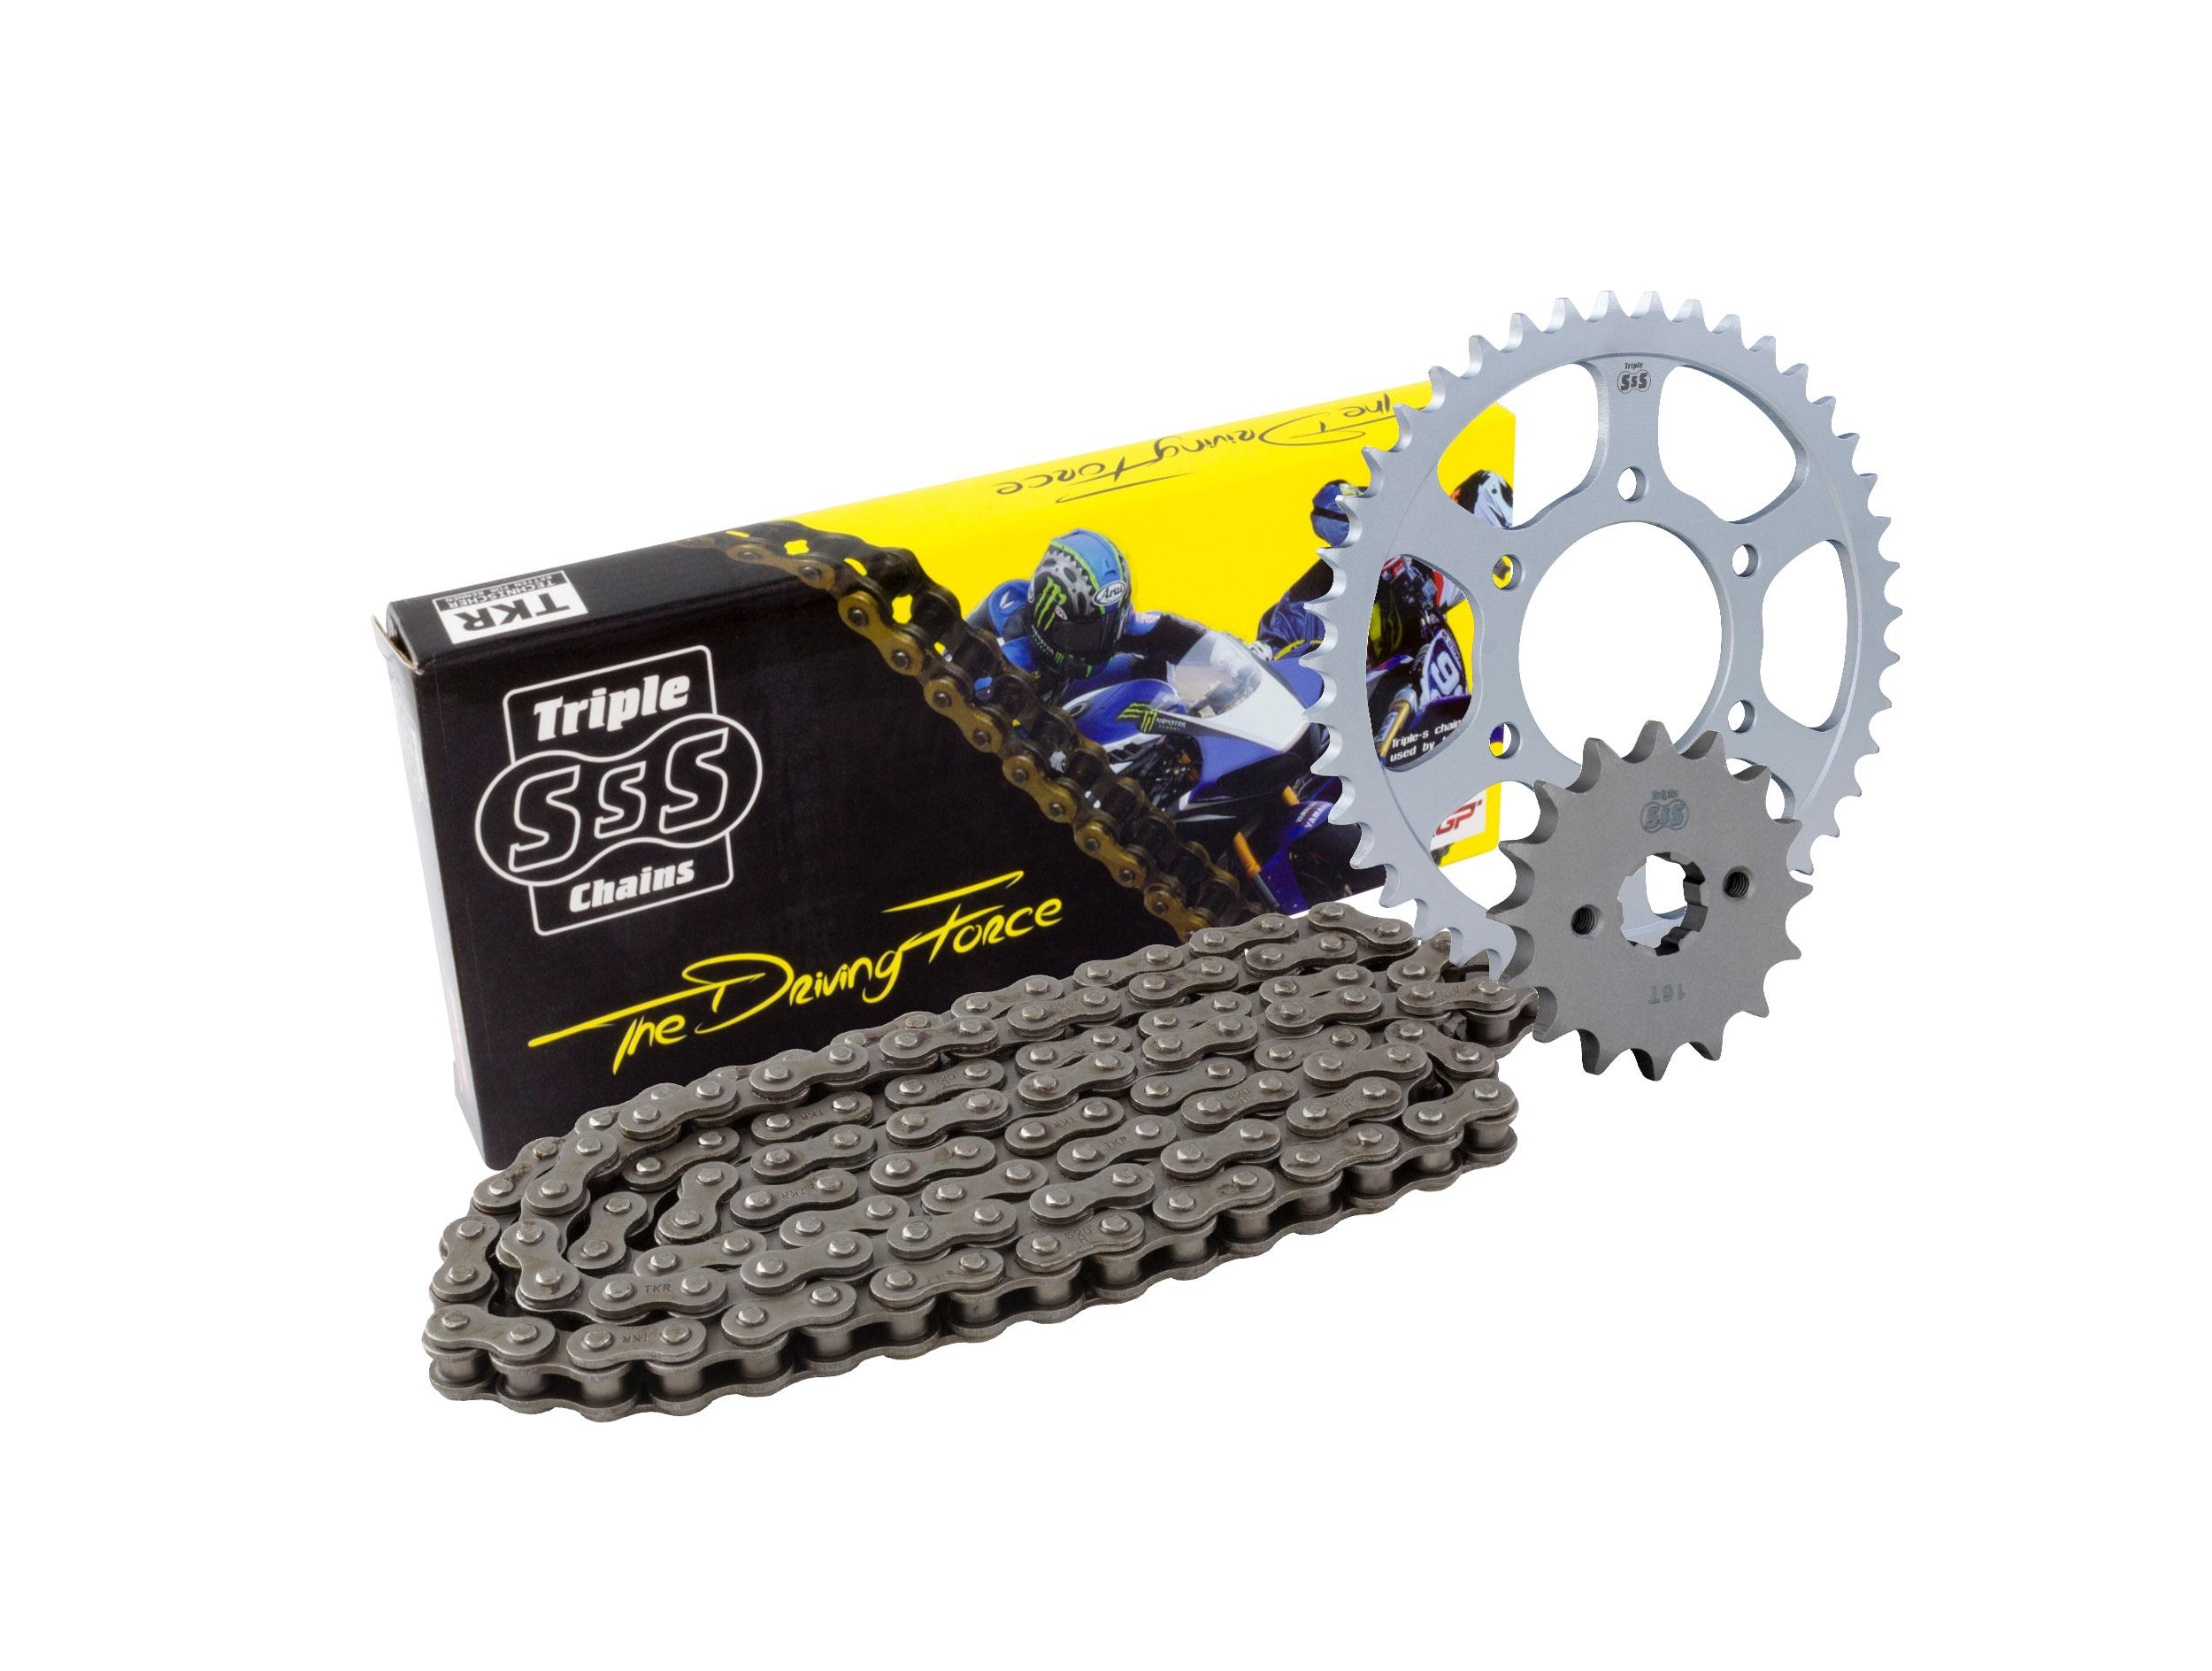 Honda NC70 S/X 14-15 Chain & Sprocket Kit: 17T Front, 43T Rear, HD Chain 520H 114Link